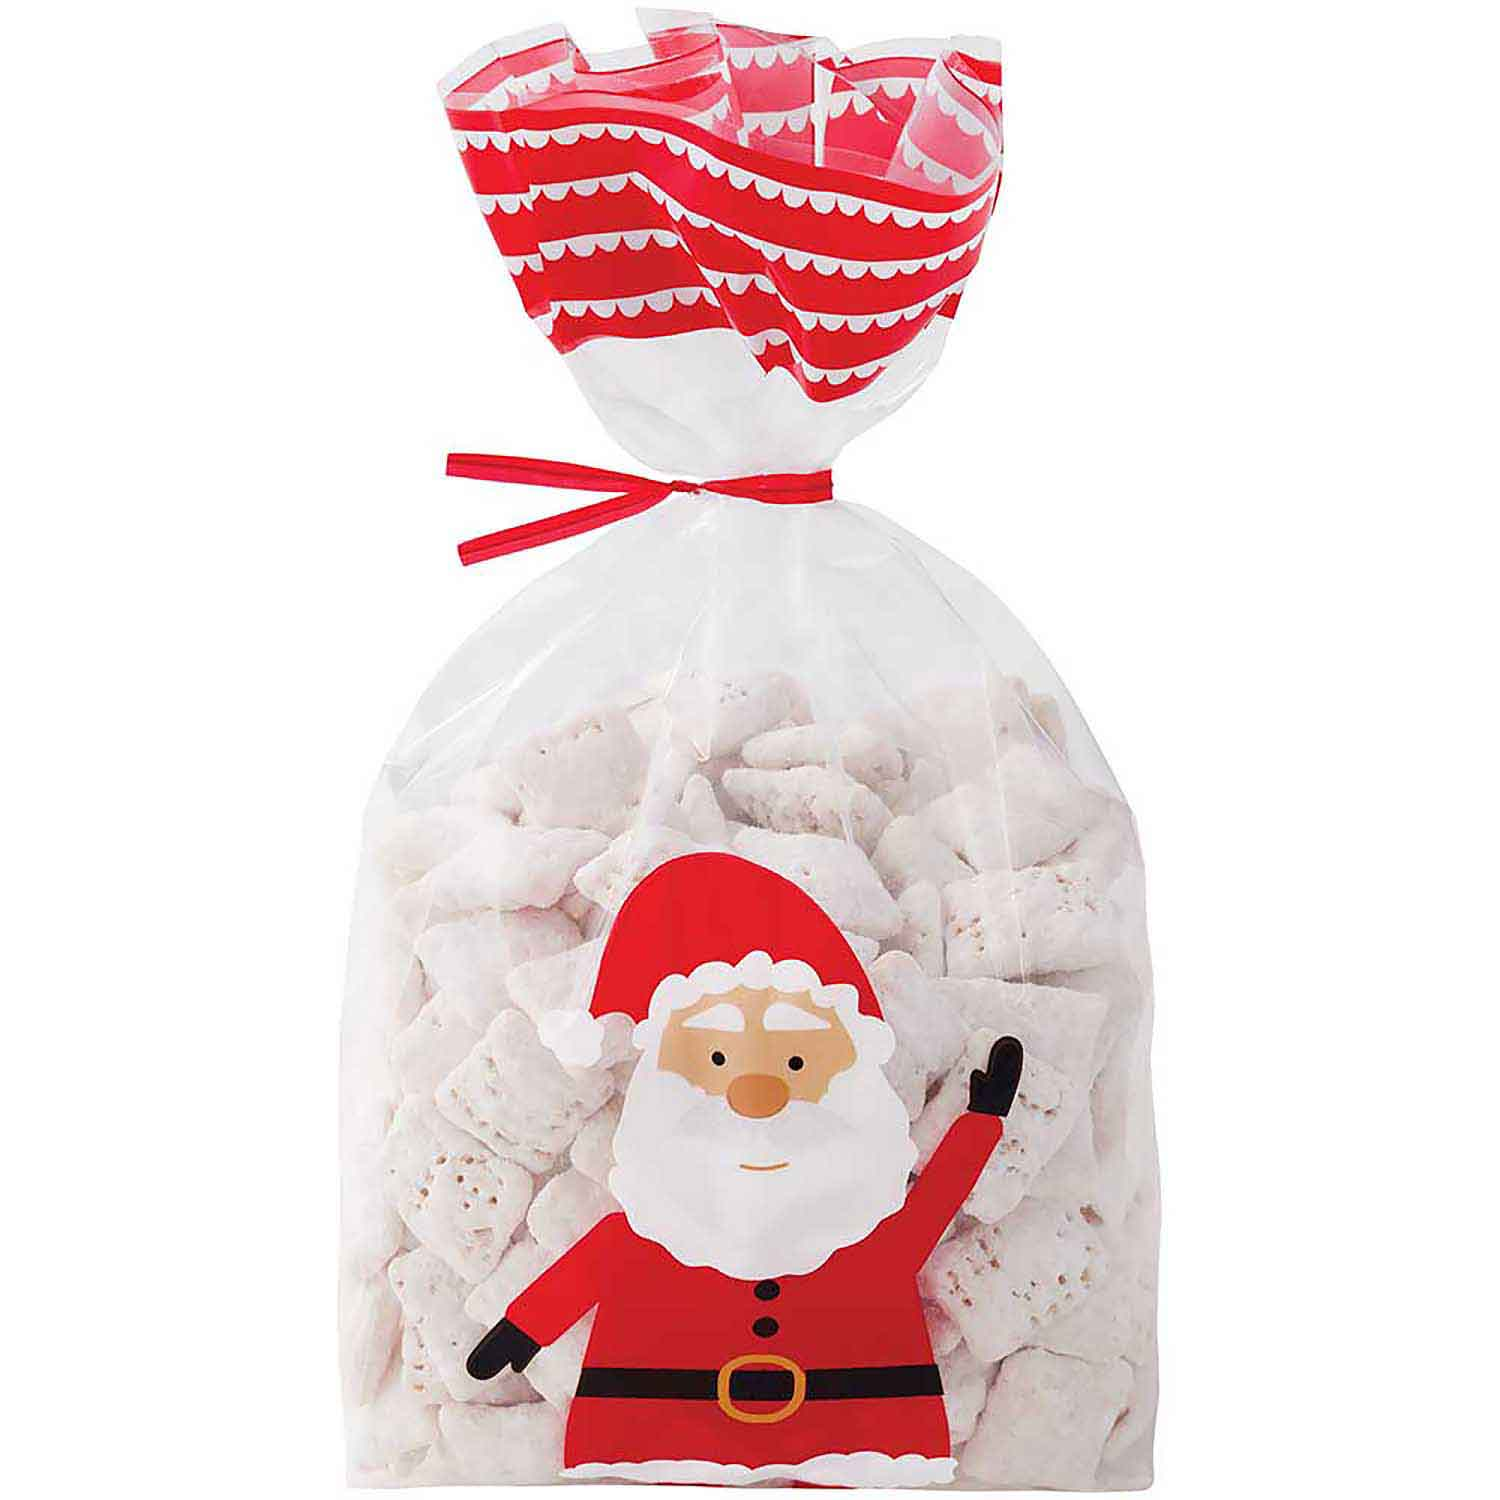 Santa Claus Treat Bags